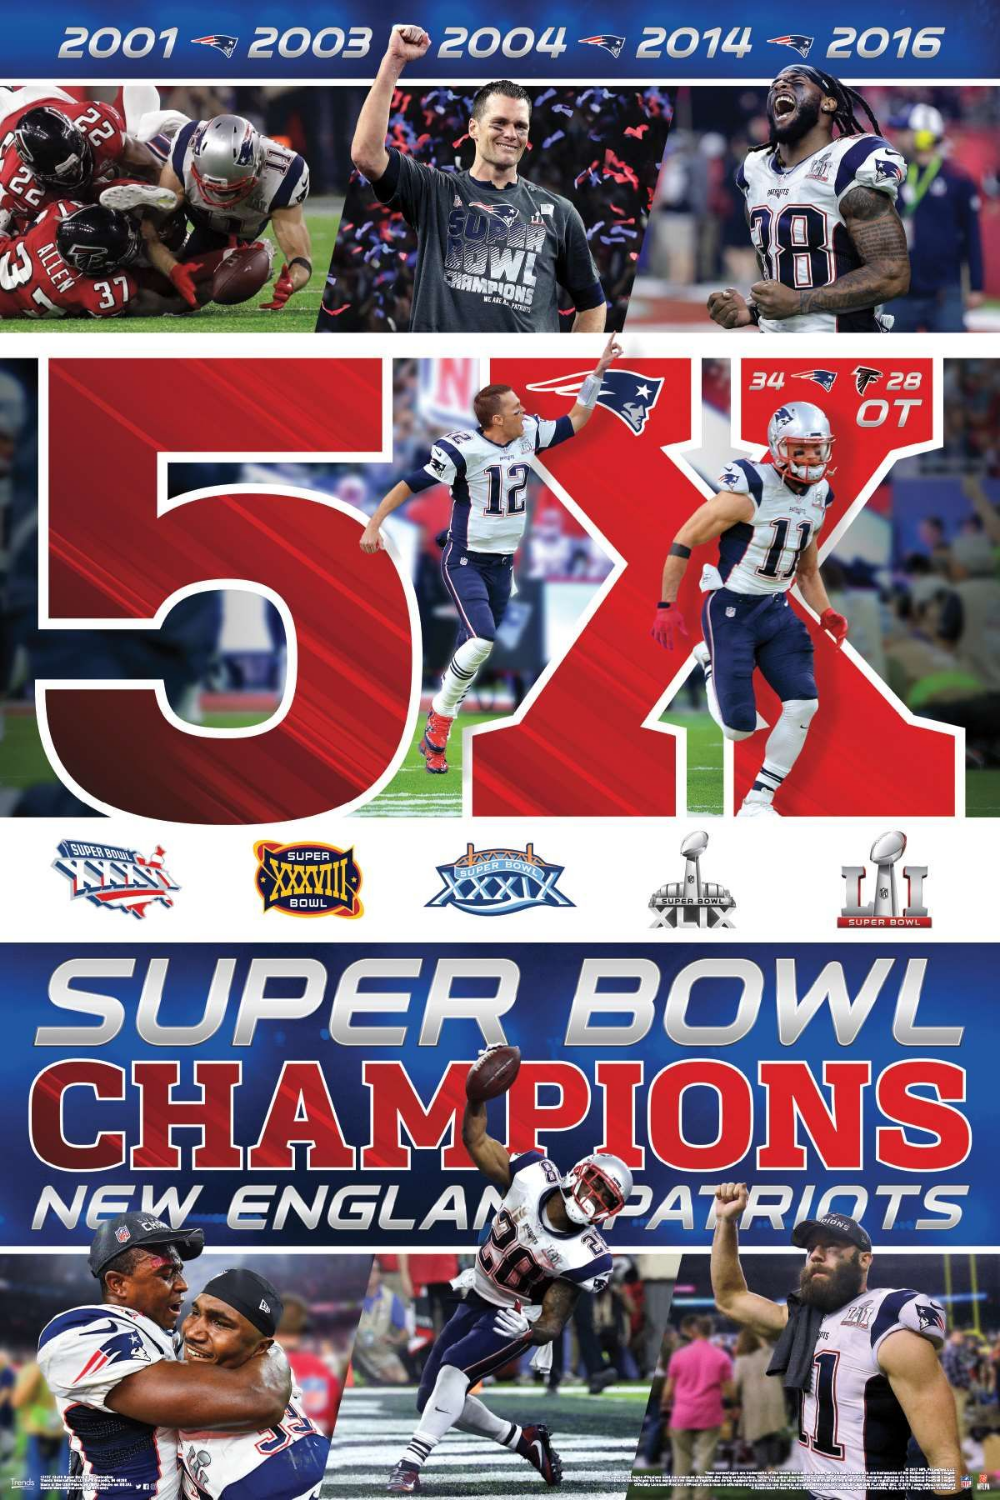 24x36 New England Patriots Super Bowl Li Celebration New England Patriots Nfl Football Posters Patriots